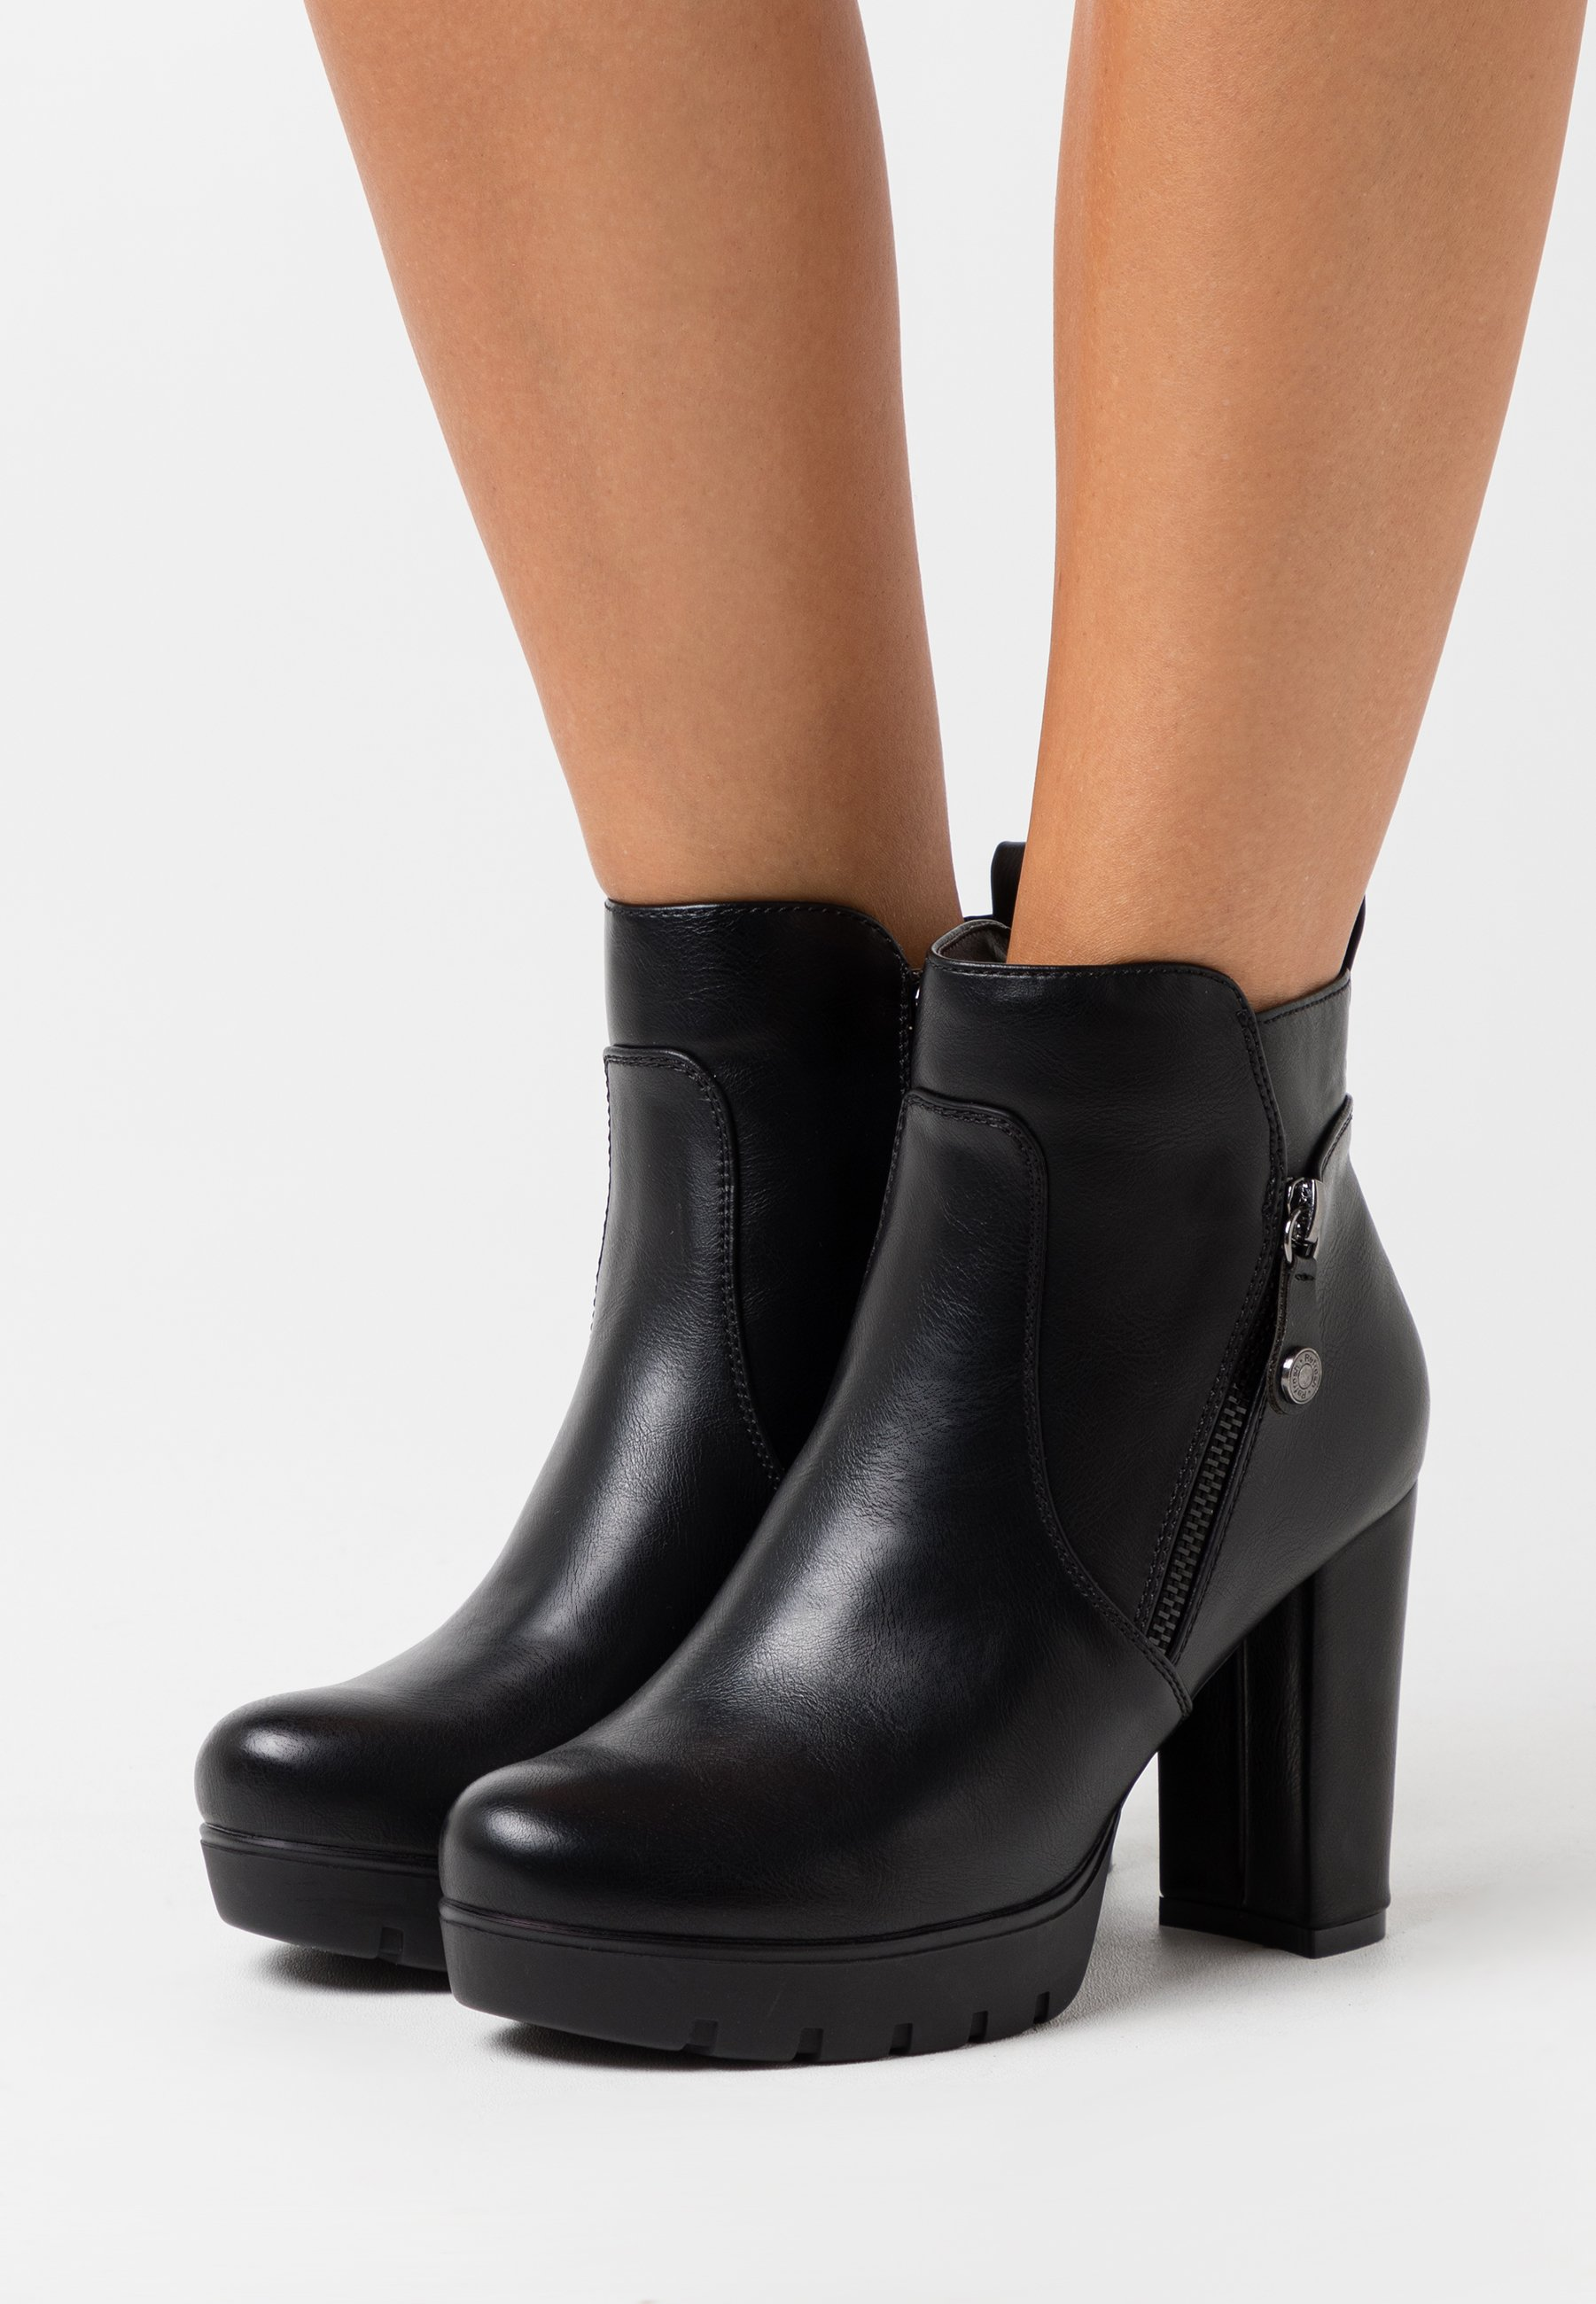 100% Guaranteed Inexpensive Women's Shoes Refresh High heeled ankle boots black lmTvUPwgn BsiOAVpcc